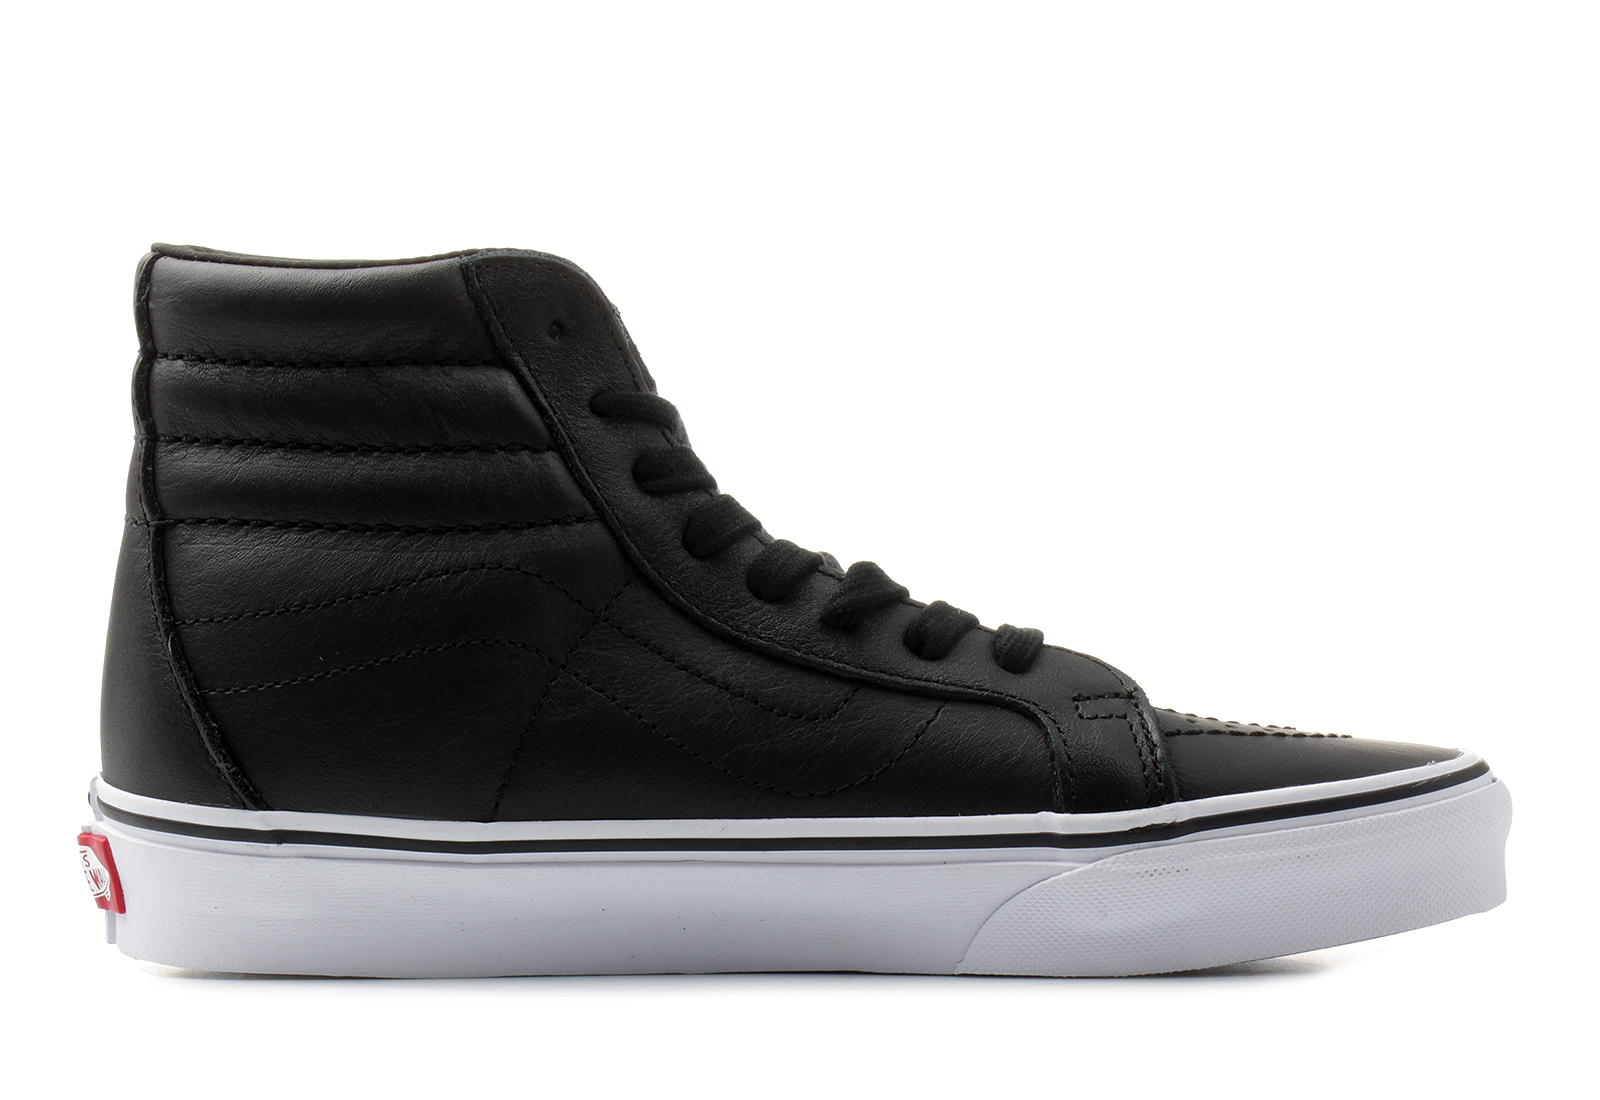 vans sneakers sk8 hi reissue va2xsbqx5 online shop for sneakers shoes and boots. Black Bedroom Furniture Sets. Home Design Ideas